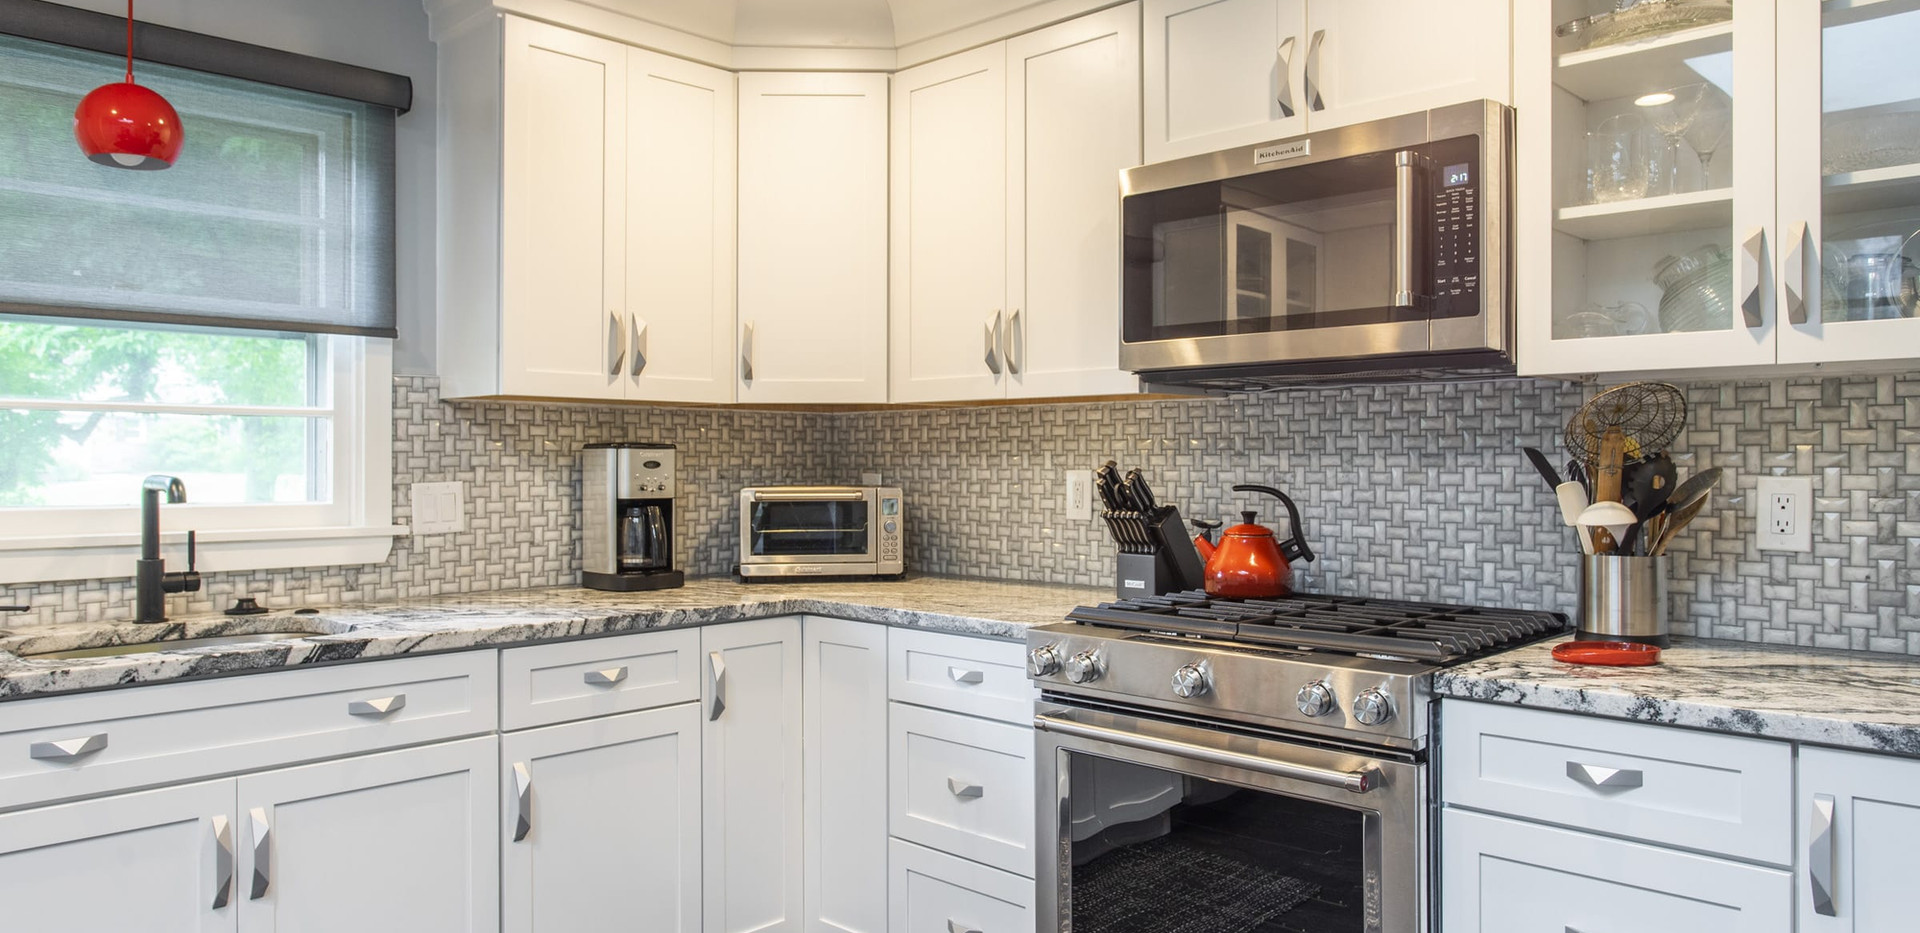 434 Clairemont Rd4.jpg